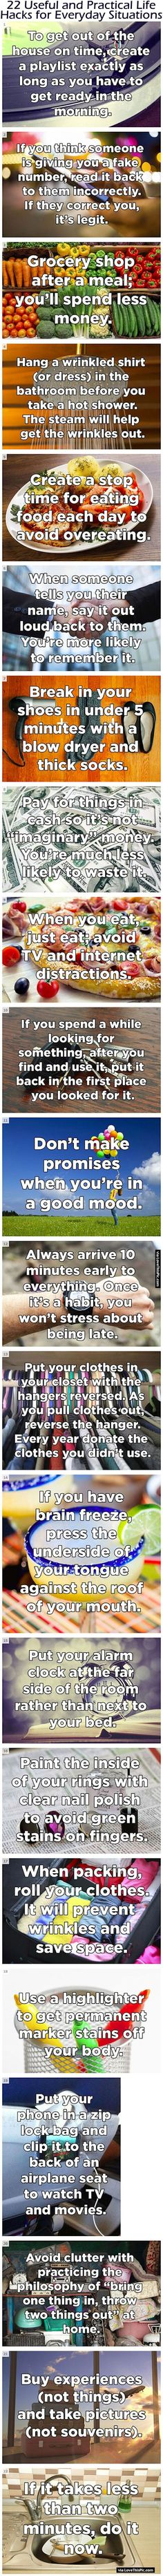 22 Useful and Practical Life Hacks for Everyday Situations diy diy ideas easy diy interesting tips life hacks life hack good to know fact. facts